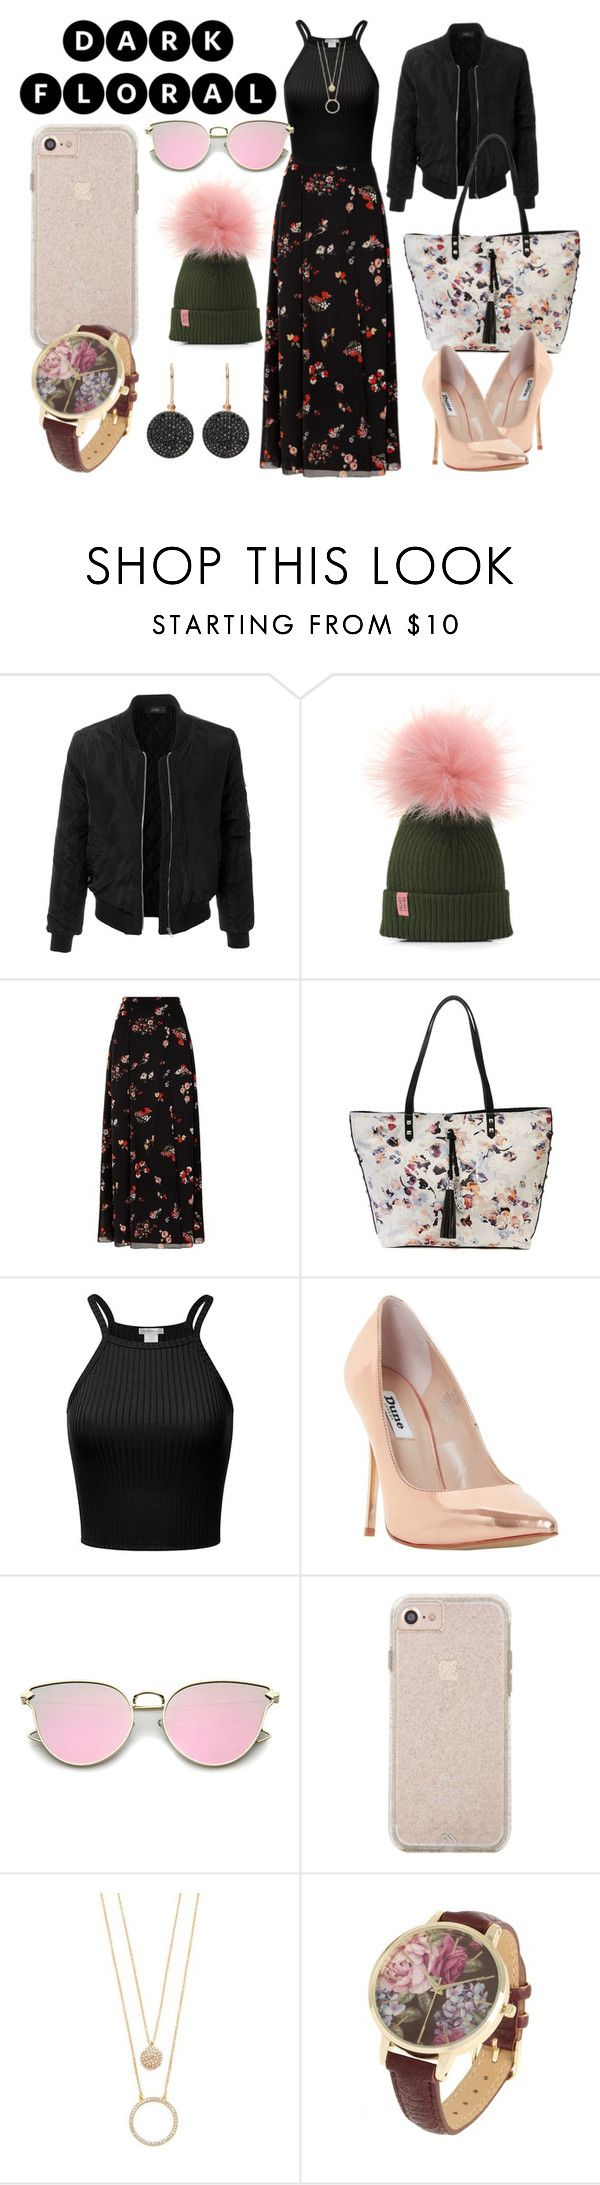 """Dark Floral"" by cheybear96 on Polyvore featuring LE3NO, RED Valentino, Jessica Simpson, Dune, Kate Spade and Astley Clarke"